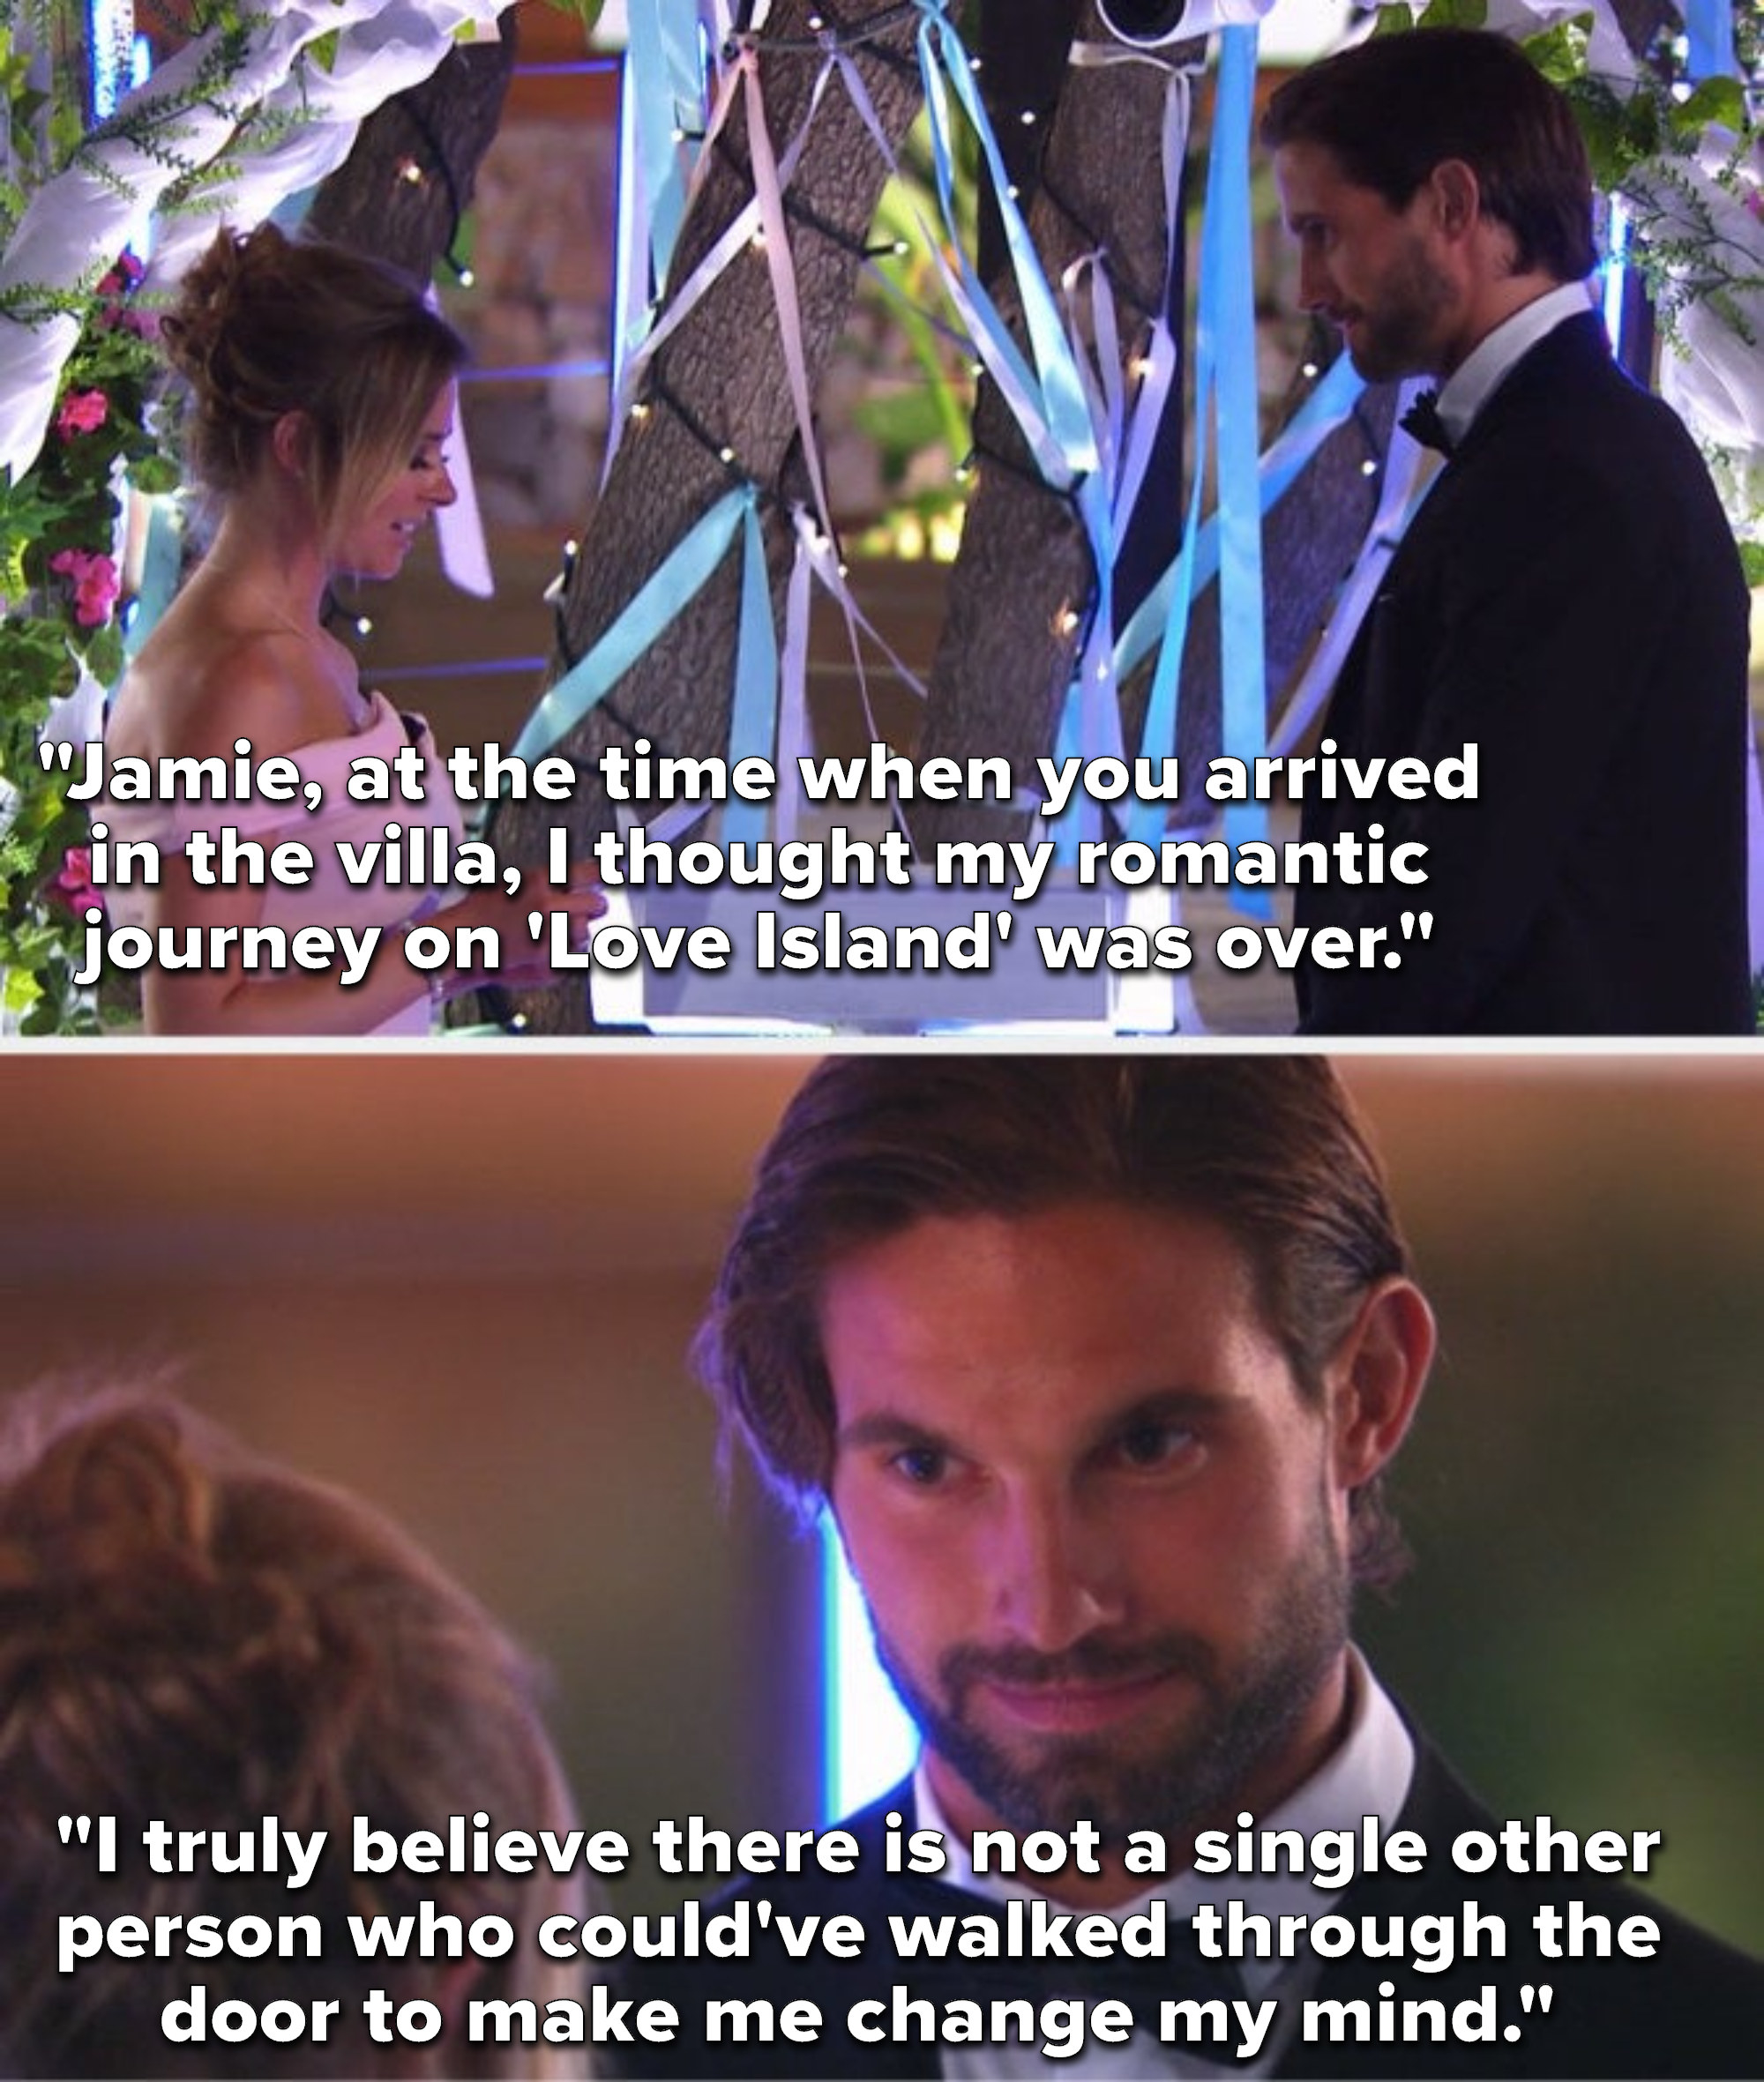 """Camilla says to a smiling Jamie, """"At the time when you arrived in the villa, I thought my romantic journey on 'Love Island' was over, I truly believe there is not a single other person who could've walked through the door to make me change my mind"""""""